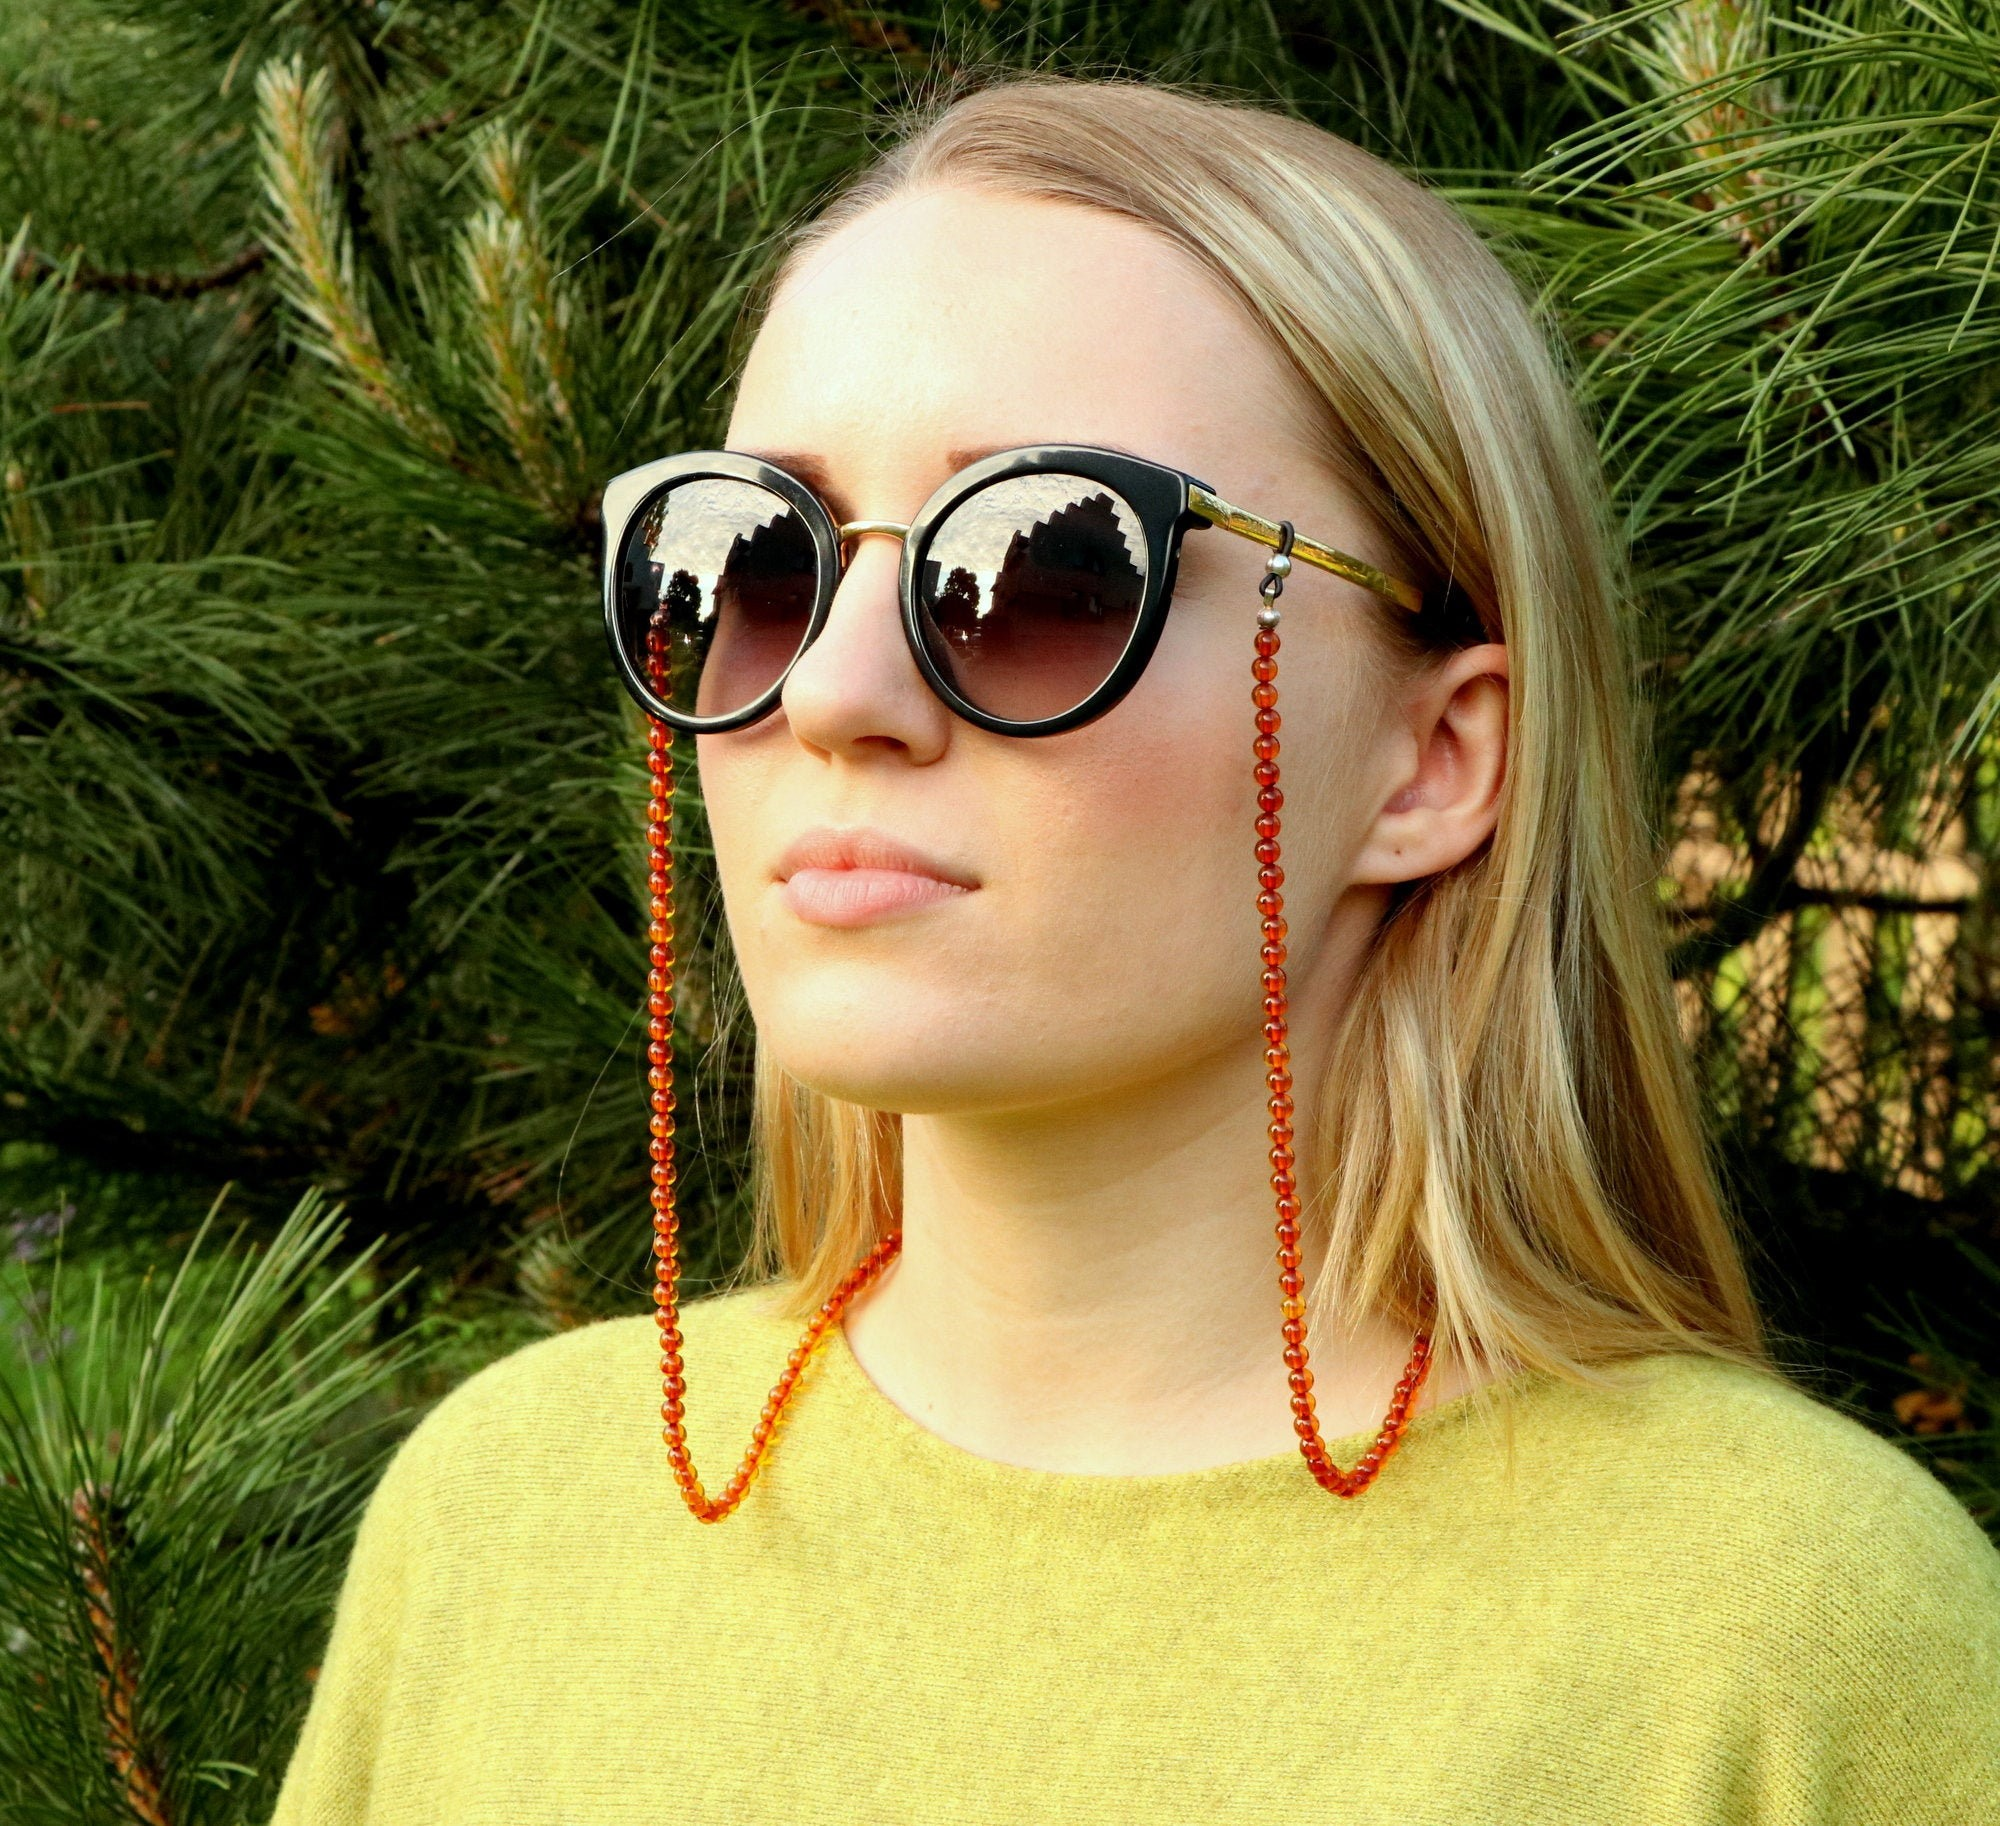 Amber chain for sunglasses,...